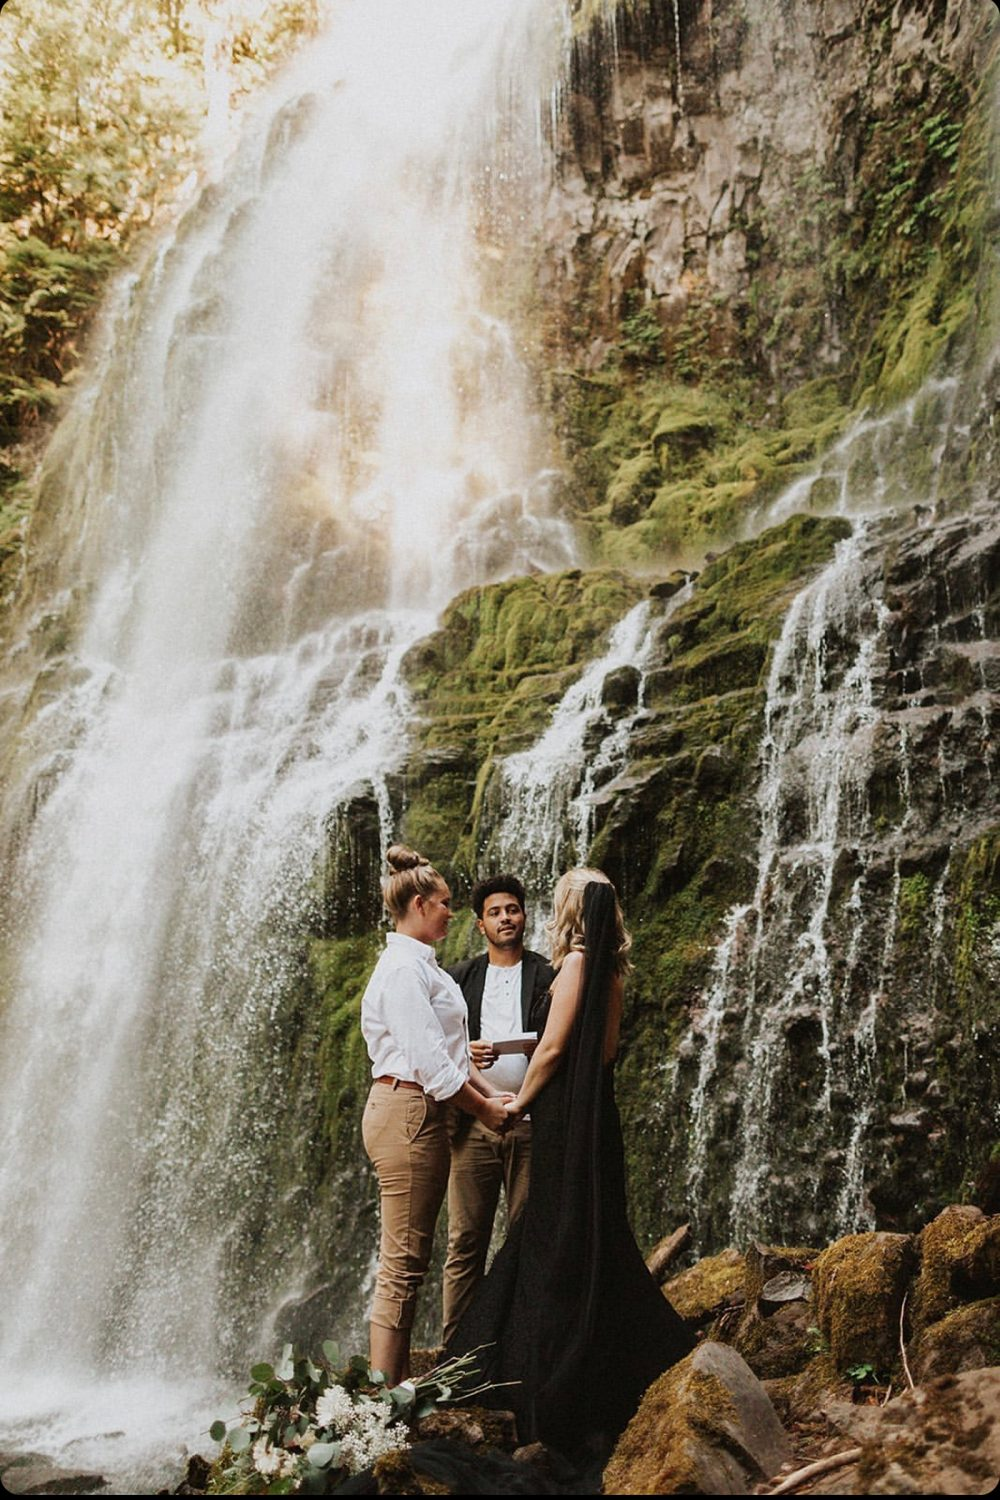 Adventure Elopement Officiant Jimmie waterfall wedding